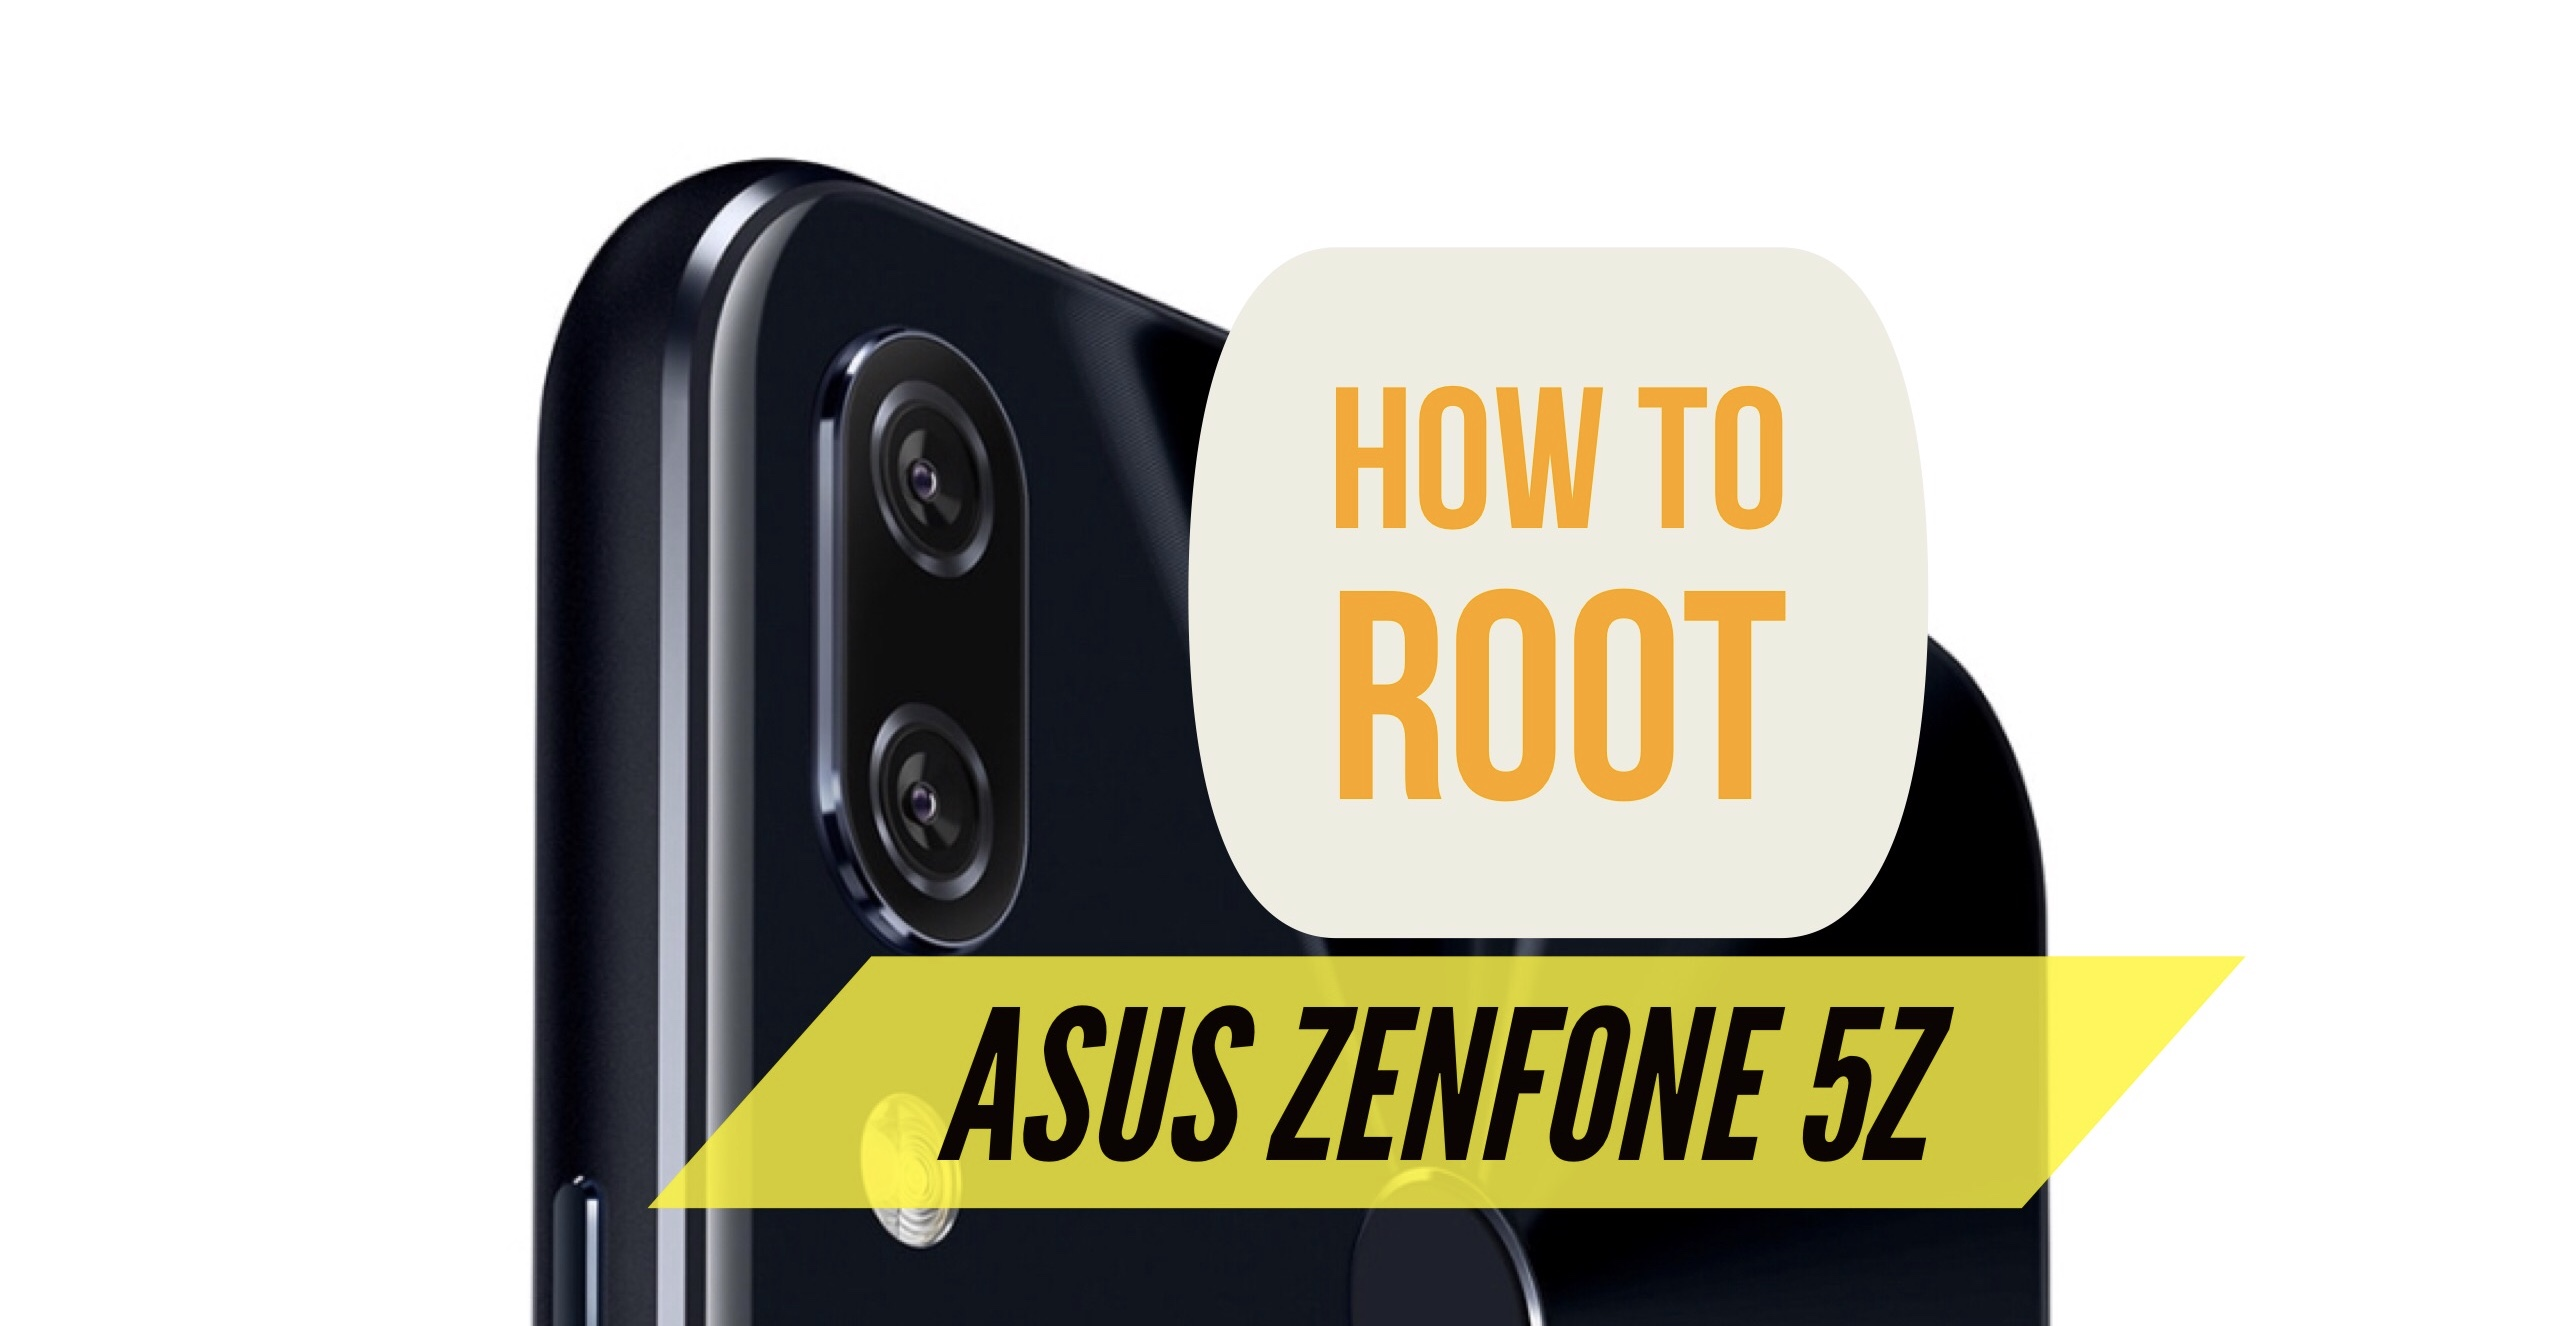 How to Root Asus Zenfone 5Z Via Magisk Manager & Patch Boot img!